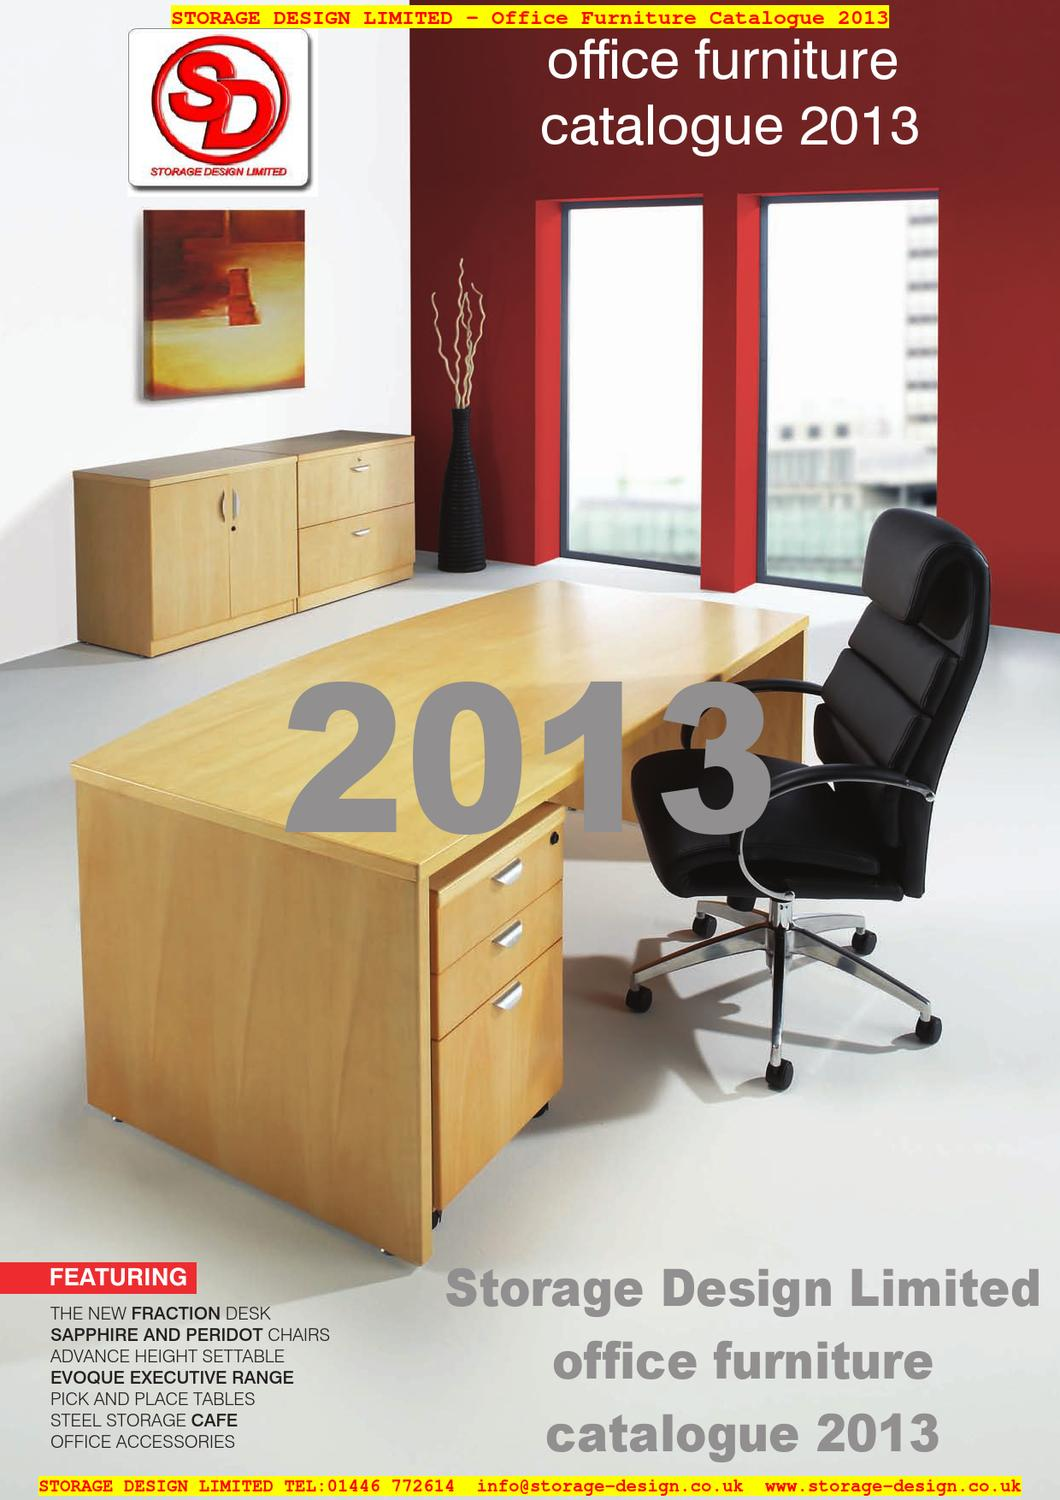 office furniture catalogue 2013 from storage design. Black Bedroom Furniture Sets. Home Design Ideas